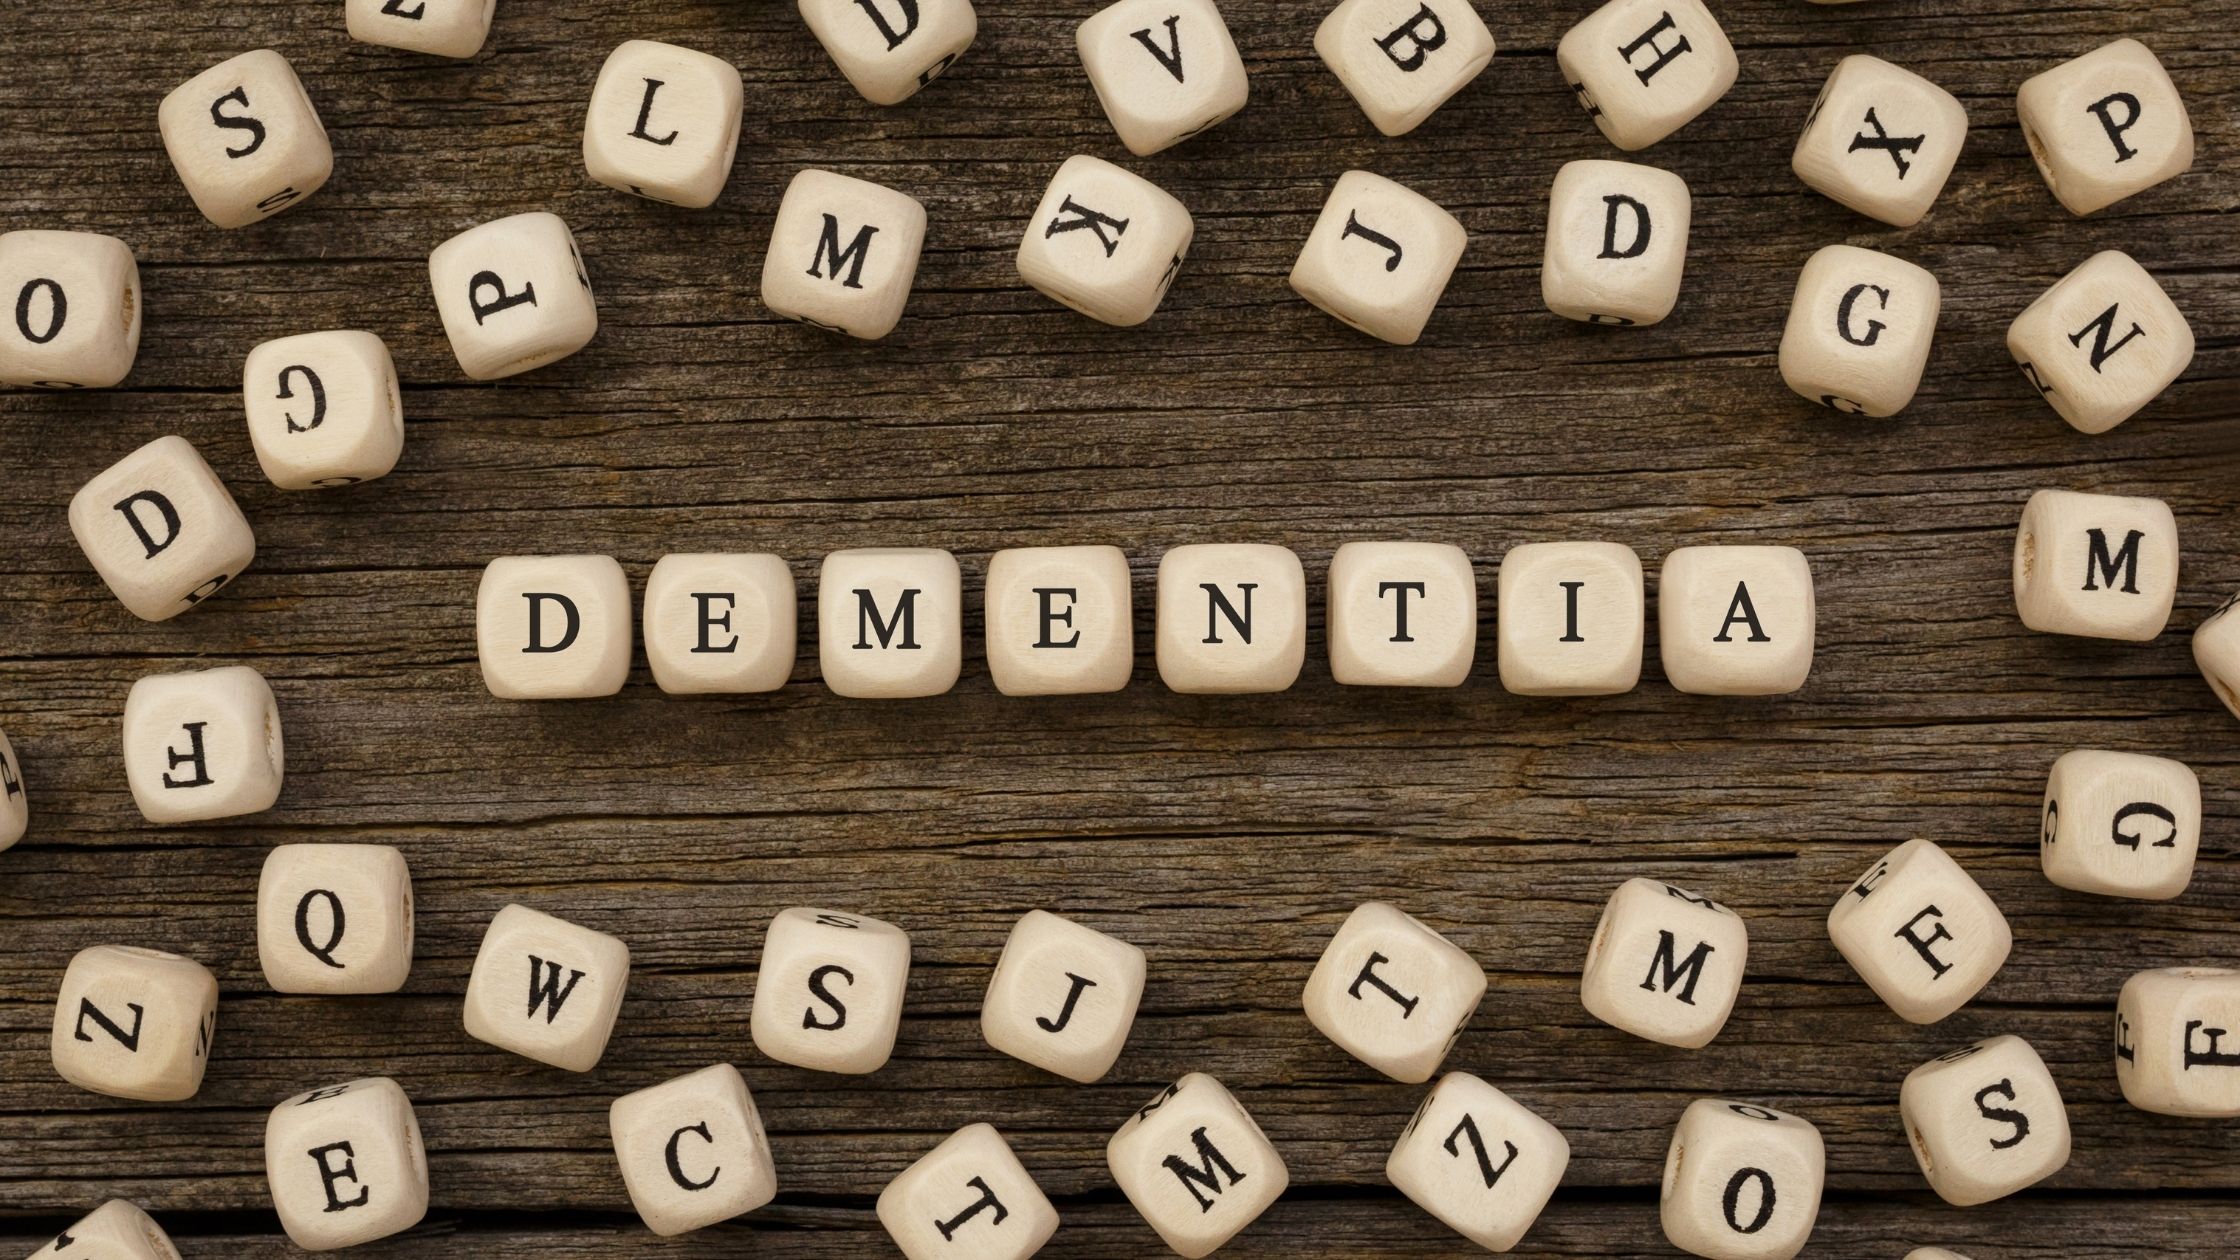 Annual Summit & Expo on Dementia and Alzheimer's Disease